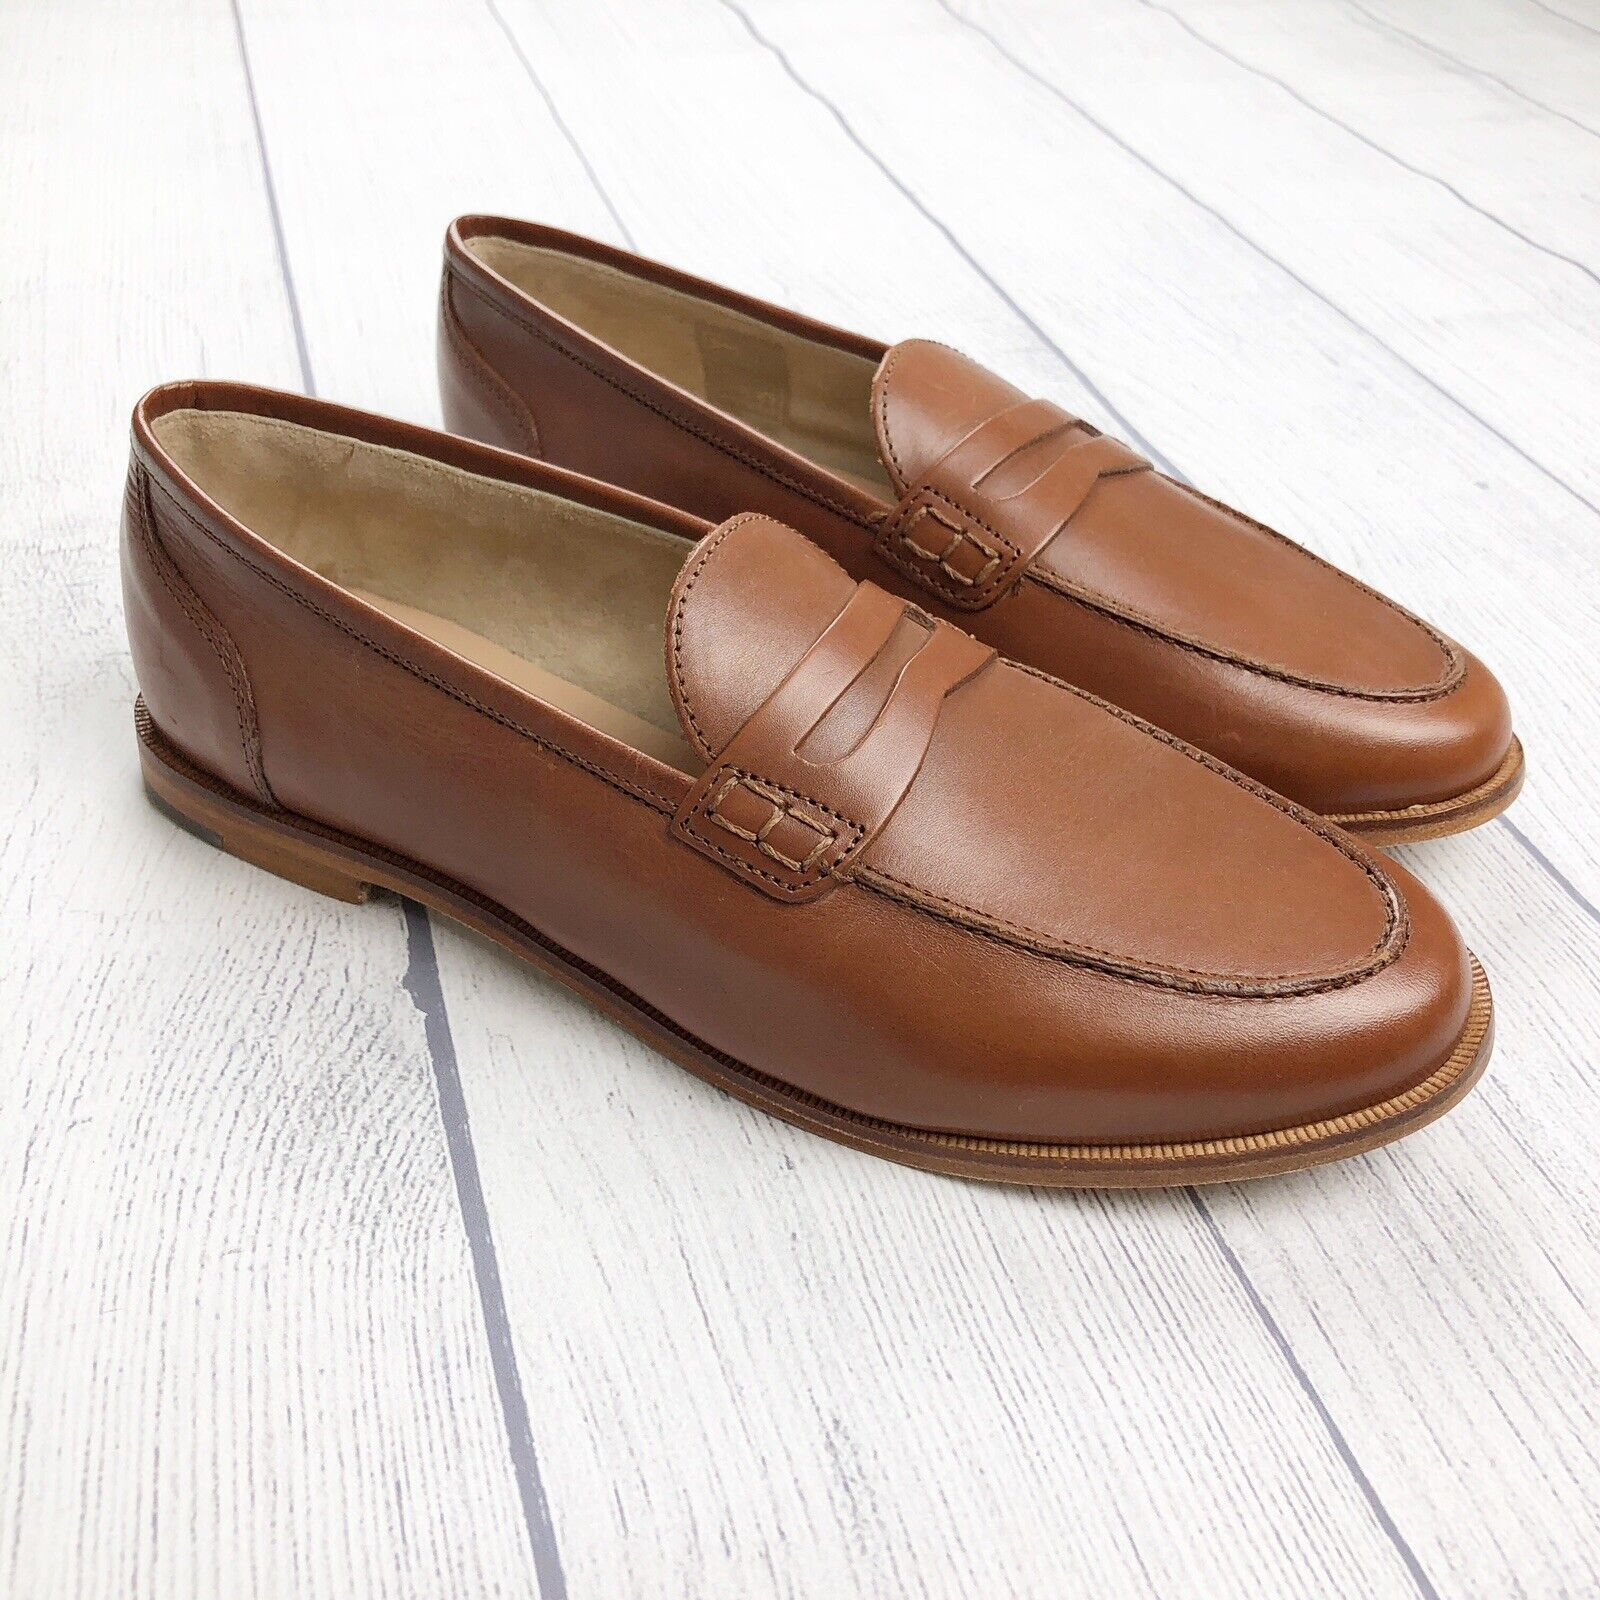 nuovo J. Crew Leather Ryan Penny Loafer Burnished Pecan 9.5